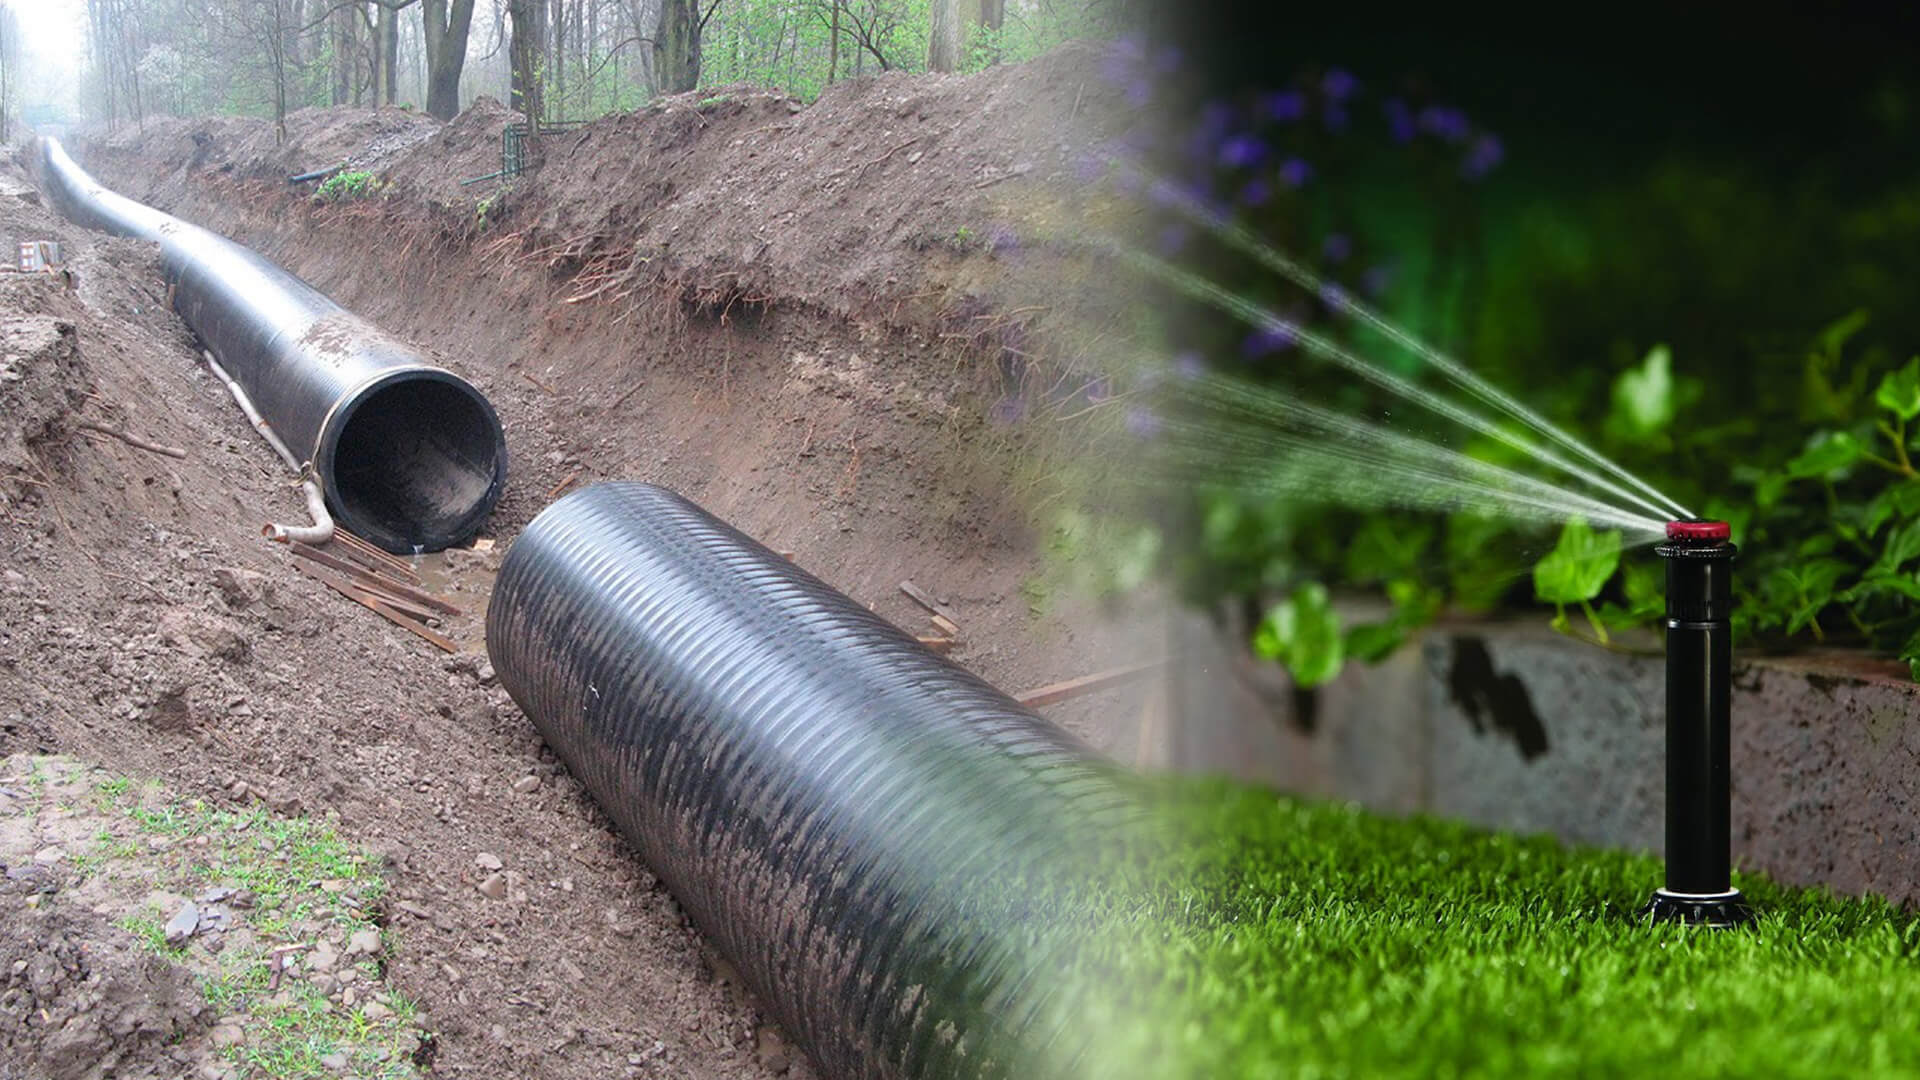 Drainage Systems & Sprinkler Services-Carrollton TX Professional Landscapers & Outdoor Living Designs-We offer Landscape Design, Outdoor Patios & Pergolas, Outdoor Living Spaces, Stonescapes, Residential & Commercial Landscaping, Irrigation Installation & Repairs, Drainage Systems, Landscape Lighting, Outdoor Living Spaces, Tree Service, Lawn Service, and more.